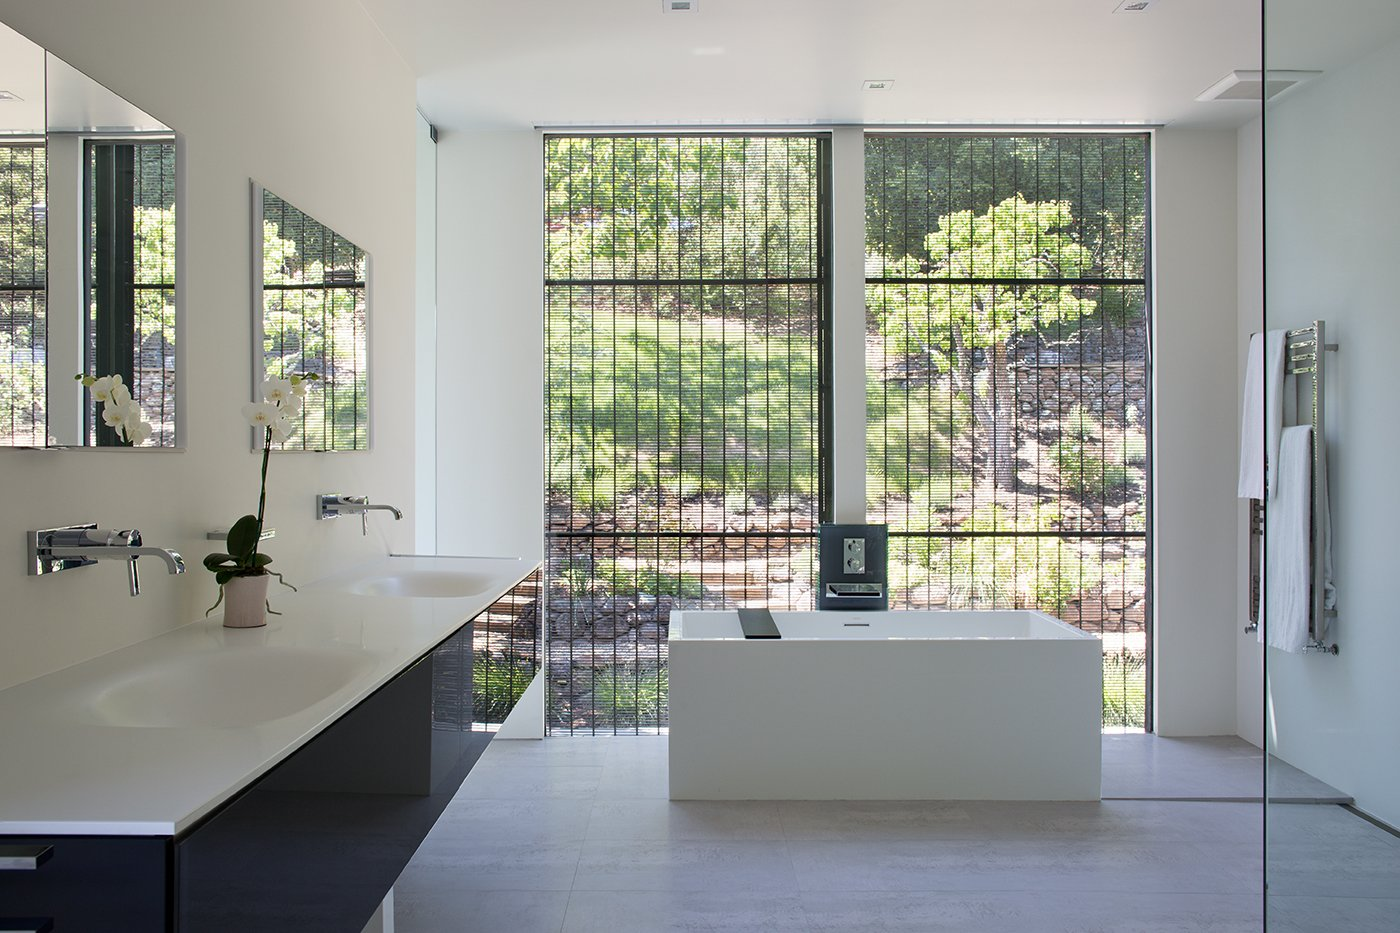 Bath Room, Freestanding Tub, and Wall Mount Sink Minimal Modern Addition  Sebastian and Tanja DiGrande's quest for natural light and open, modern design led them to Klopf Architecture in San Francisco. Working hand-in-hand with homeowner/designer Tanja DiGrande, Klopf collaborated on a modern addition to the rear of a traditional-style home. The idea was to depart from the original style completely to draw a distinction between the original house and any later additions, as well as observe a very minimal, clean, gallery-like modern style against which changing daylight, art, furniture, and of course the people provide the color and motion.  With its dark gray stuccoed walls, dark steel railing, and floor-to-ceiling windows, the exterior of the addition is at the same time an open, modern box as well as a receding volume that acts almost as a backdrop for the house, receding visually out of respect for the original home. From the interior, windows bring in nature and views from all around the lush property. They also allow views of the original house. Up on the roof deck the views magnify. The owners use a boom and crank to bring up food and drinks when entertaining!  Inside, the simple clean-lined spaces showcase the couple's minimal, modern taste. The open bathroom epitomizes the clean, minimal style of the addition. On the exterior, steel elements bring a more industrial modern feeling to the addition from the rear.   Klopf Architecture